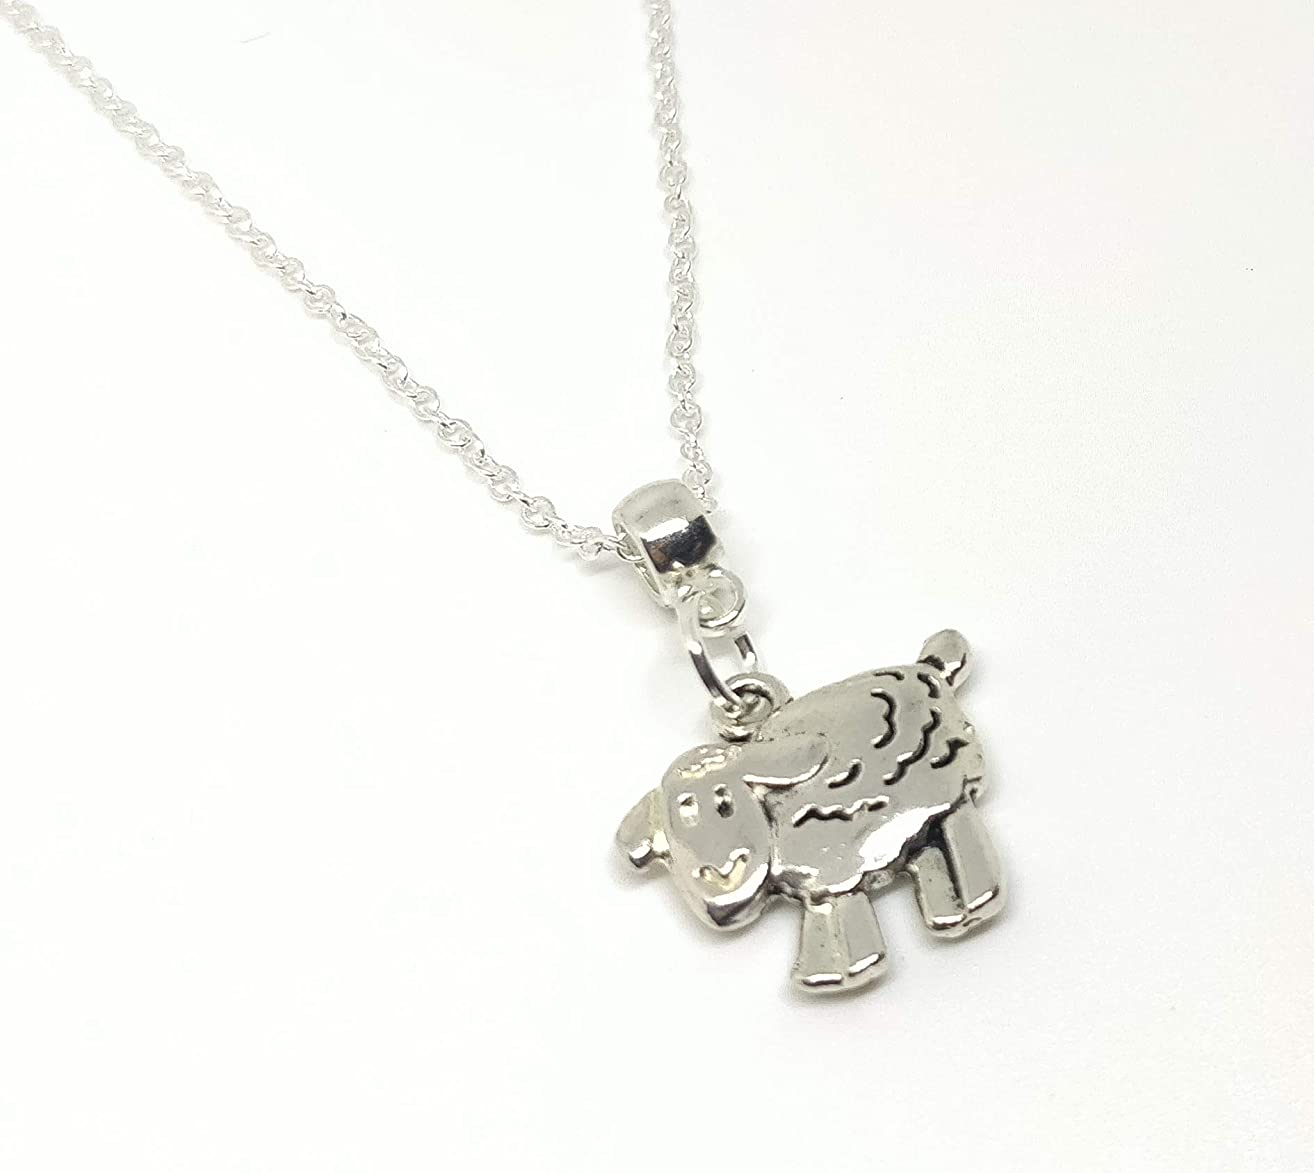 Sheep Pendant Link Chain Silver Plated Necklace